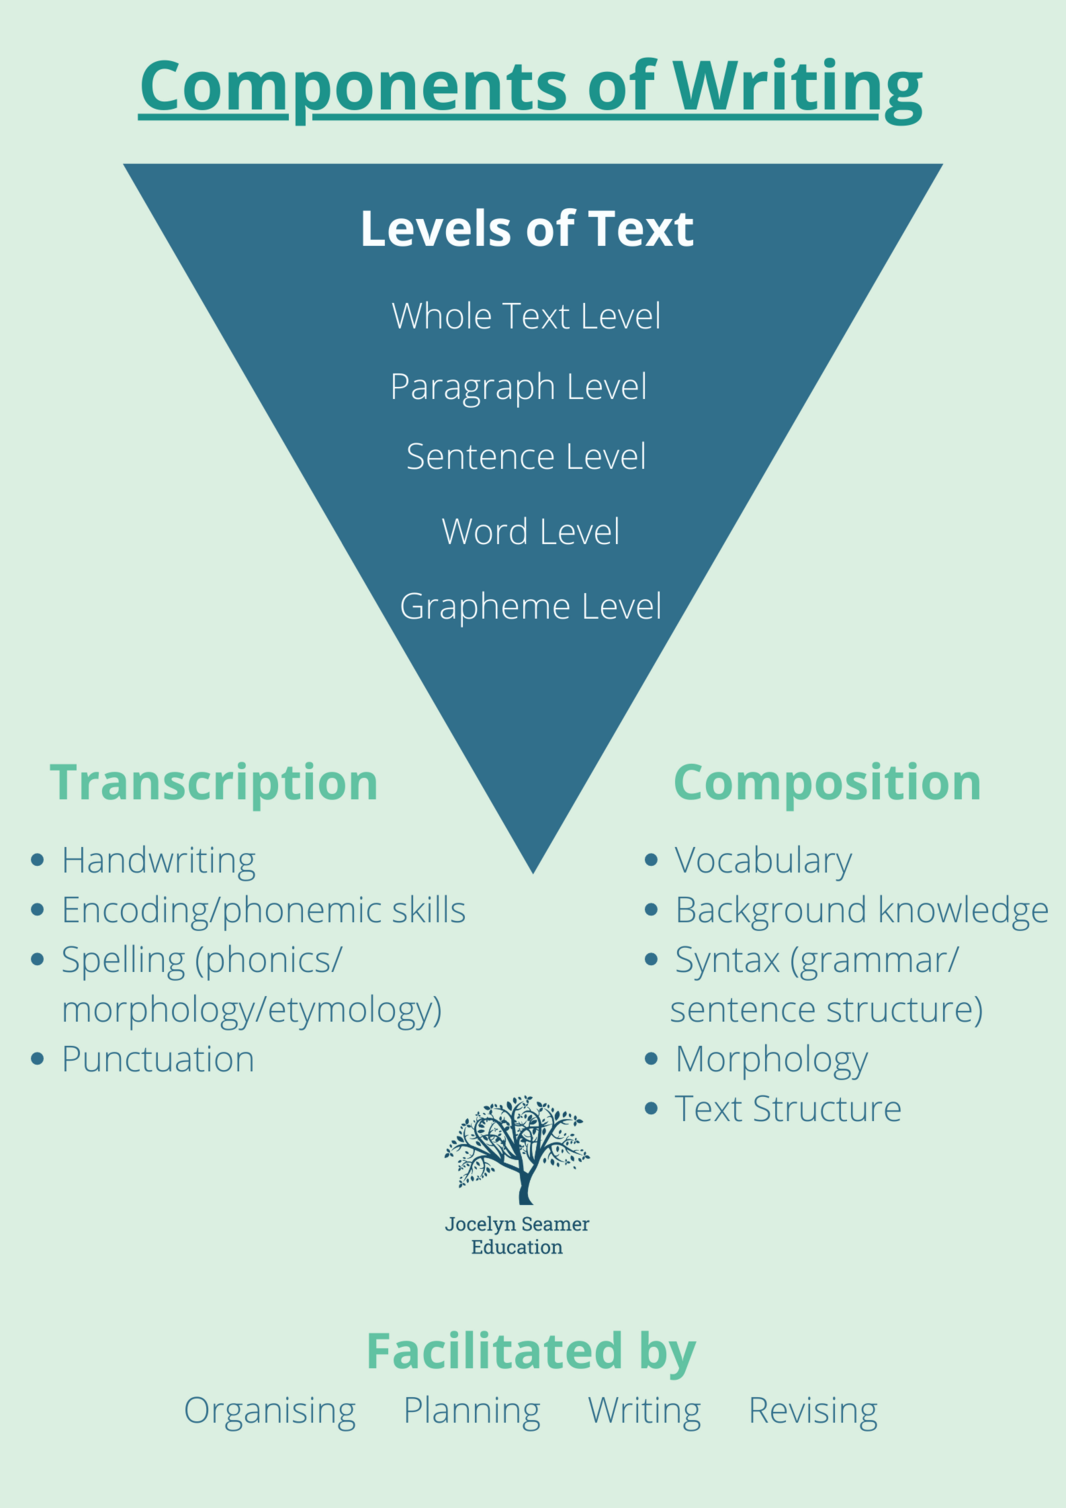 Components of writing 1